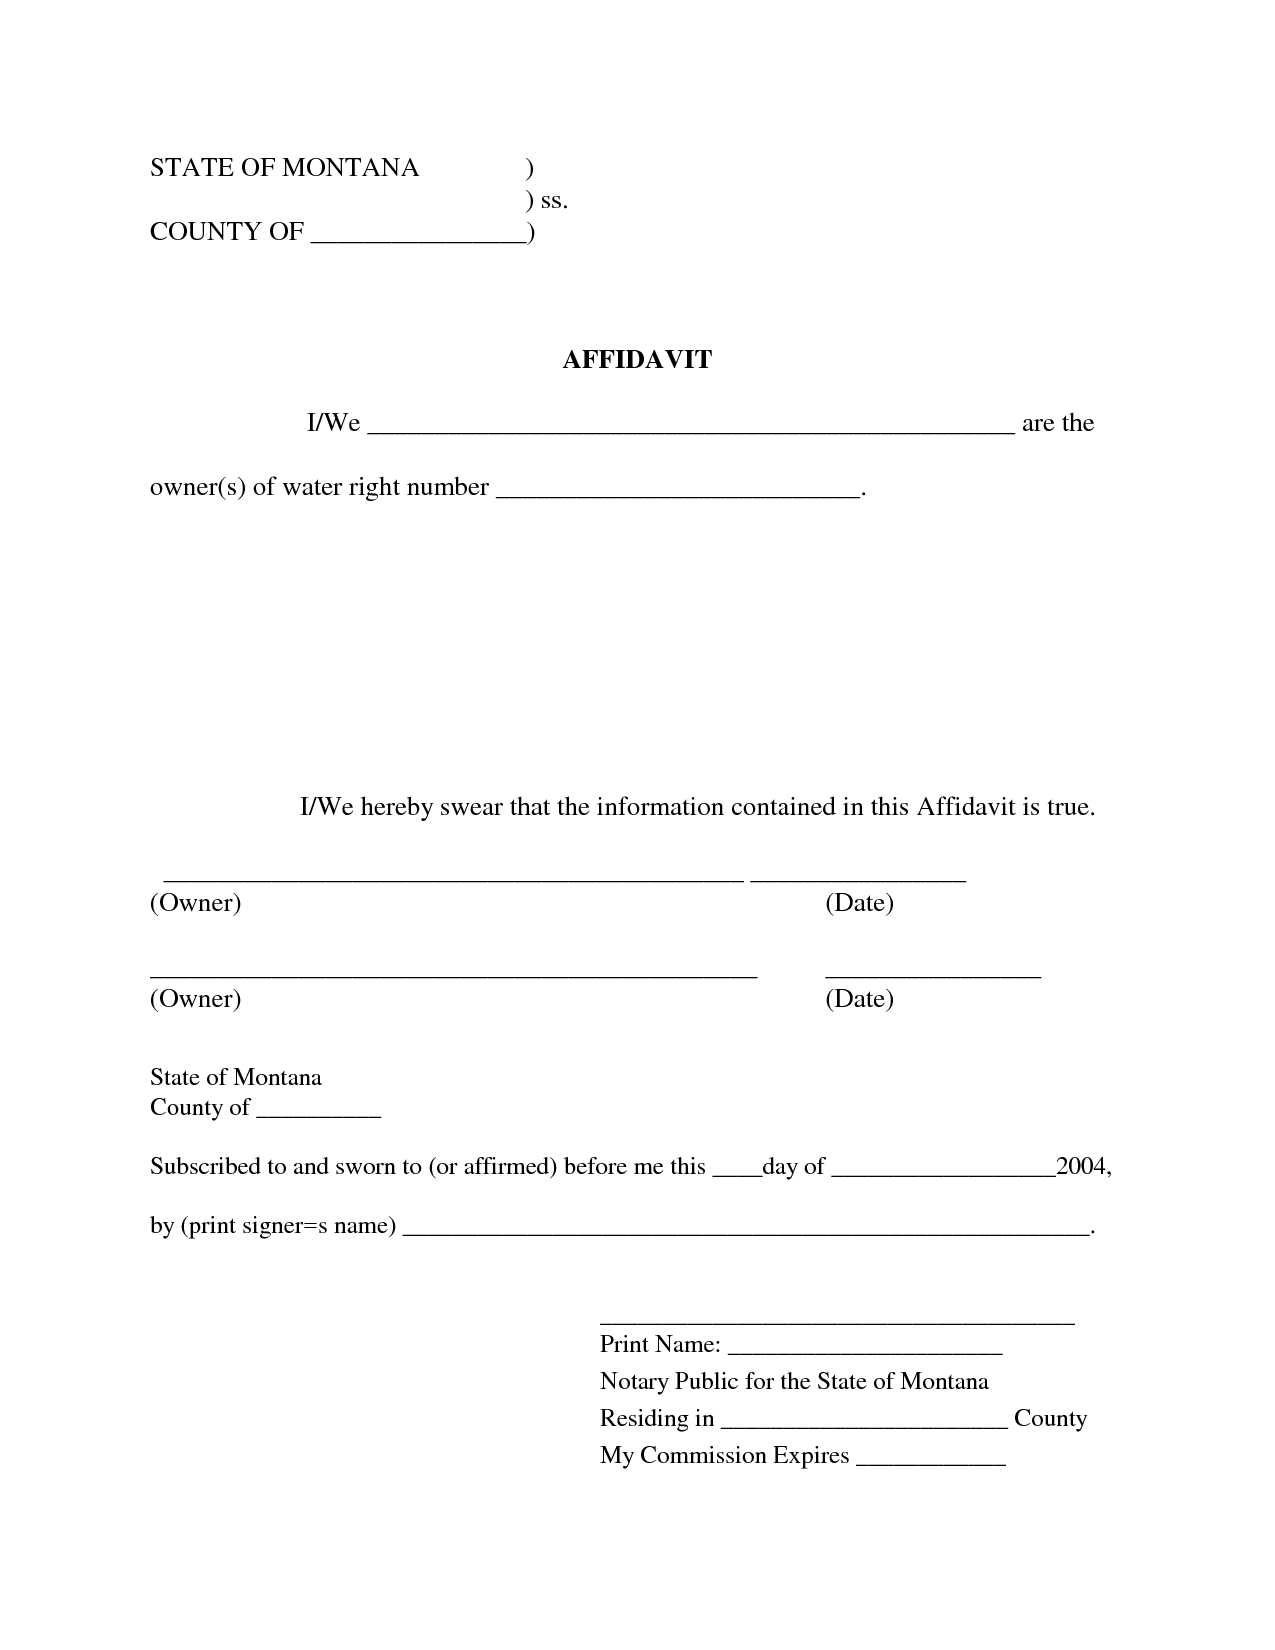 Free Blank Affidavit Form | Blank Sworn Affidavit Forms  General Affidavit Sample